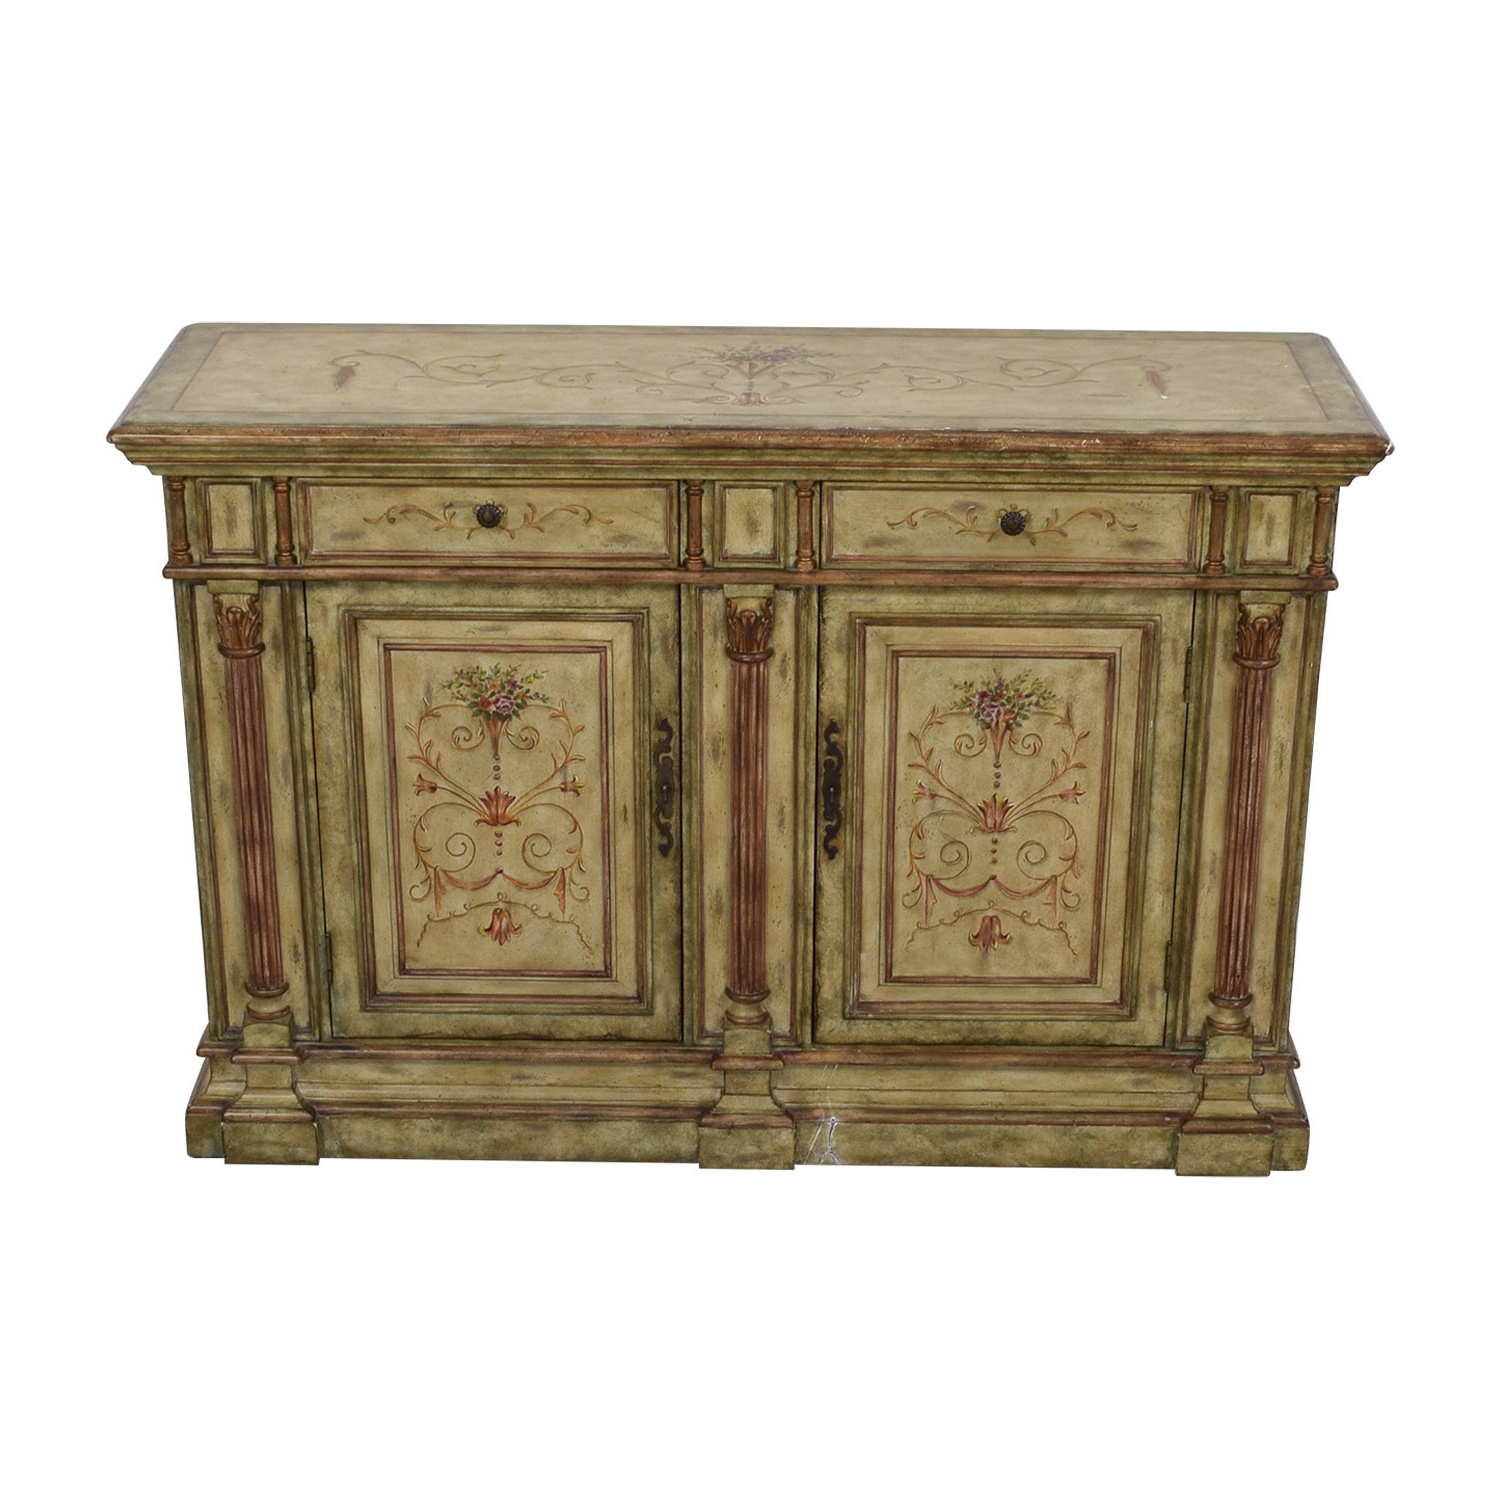 78% Off – Hooker Furniture Hooker Furniture Seven Seas Creme Scroll Painted Sideboard / Storage With Regard To Seven Seas Asian Sideboards (View 4 of 20)